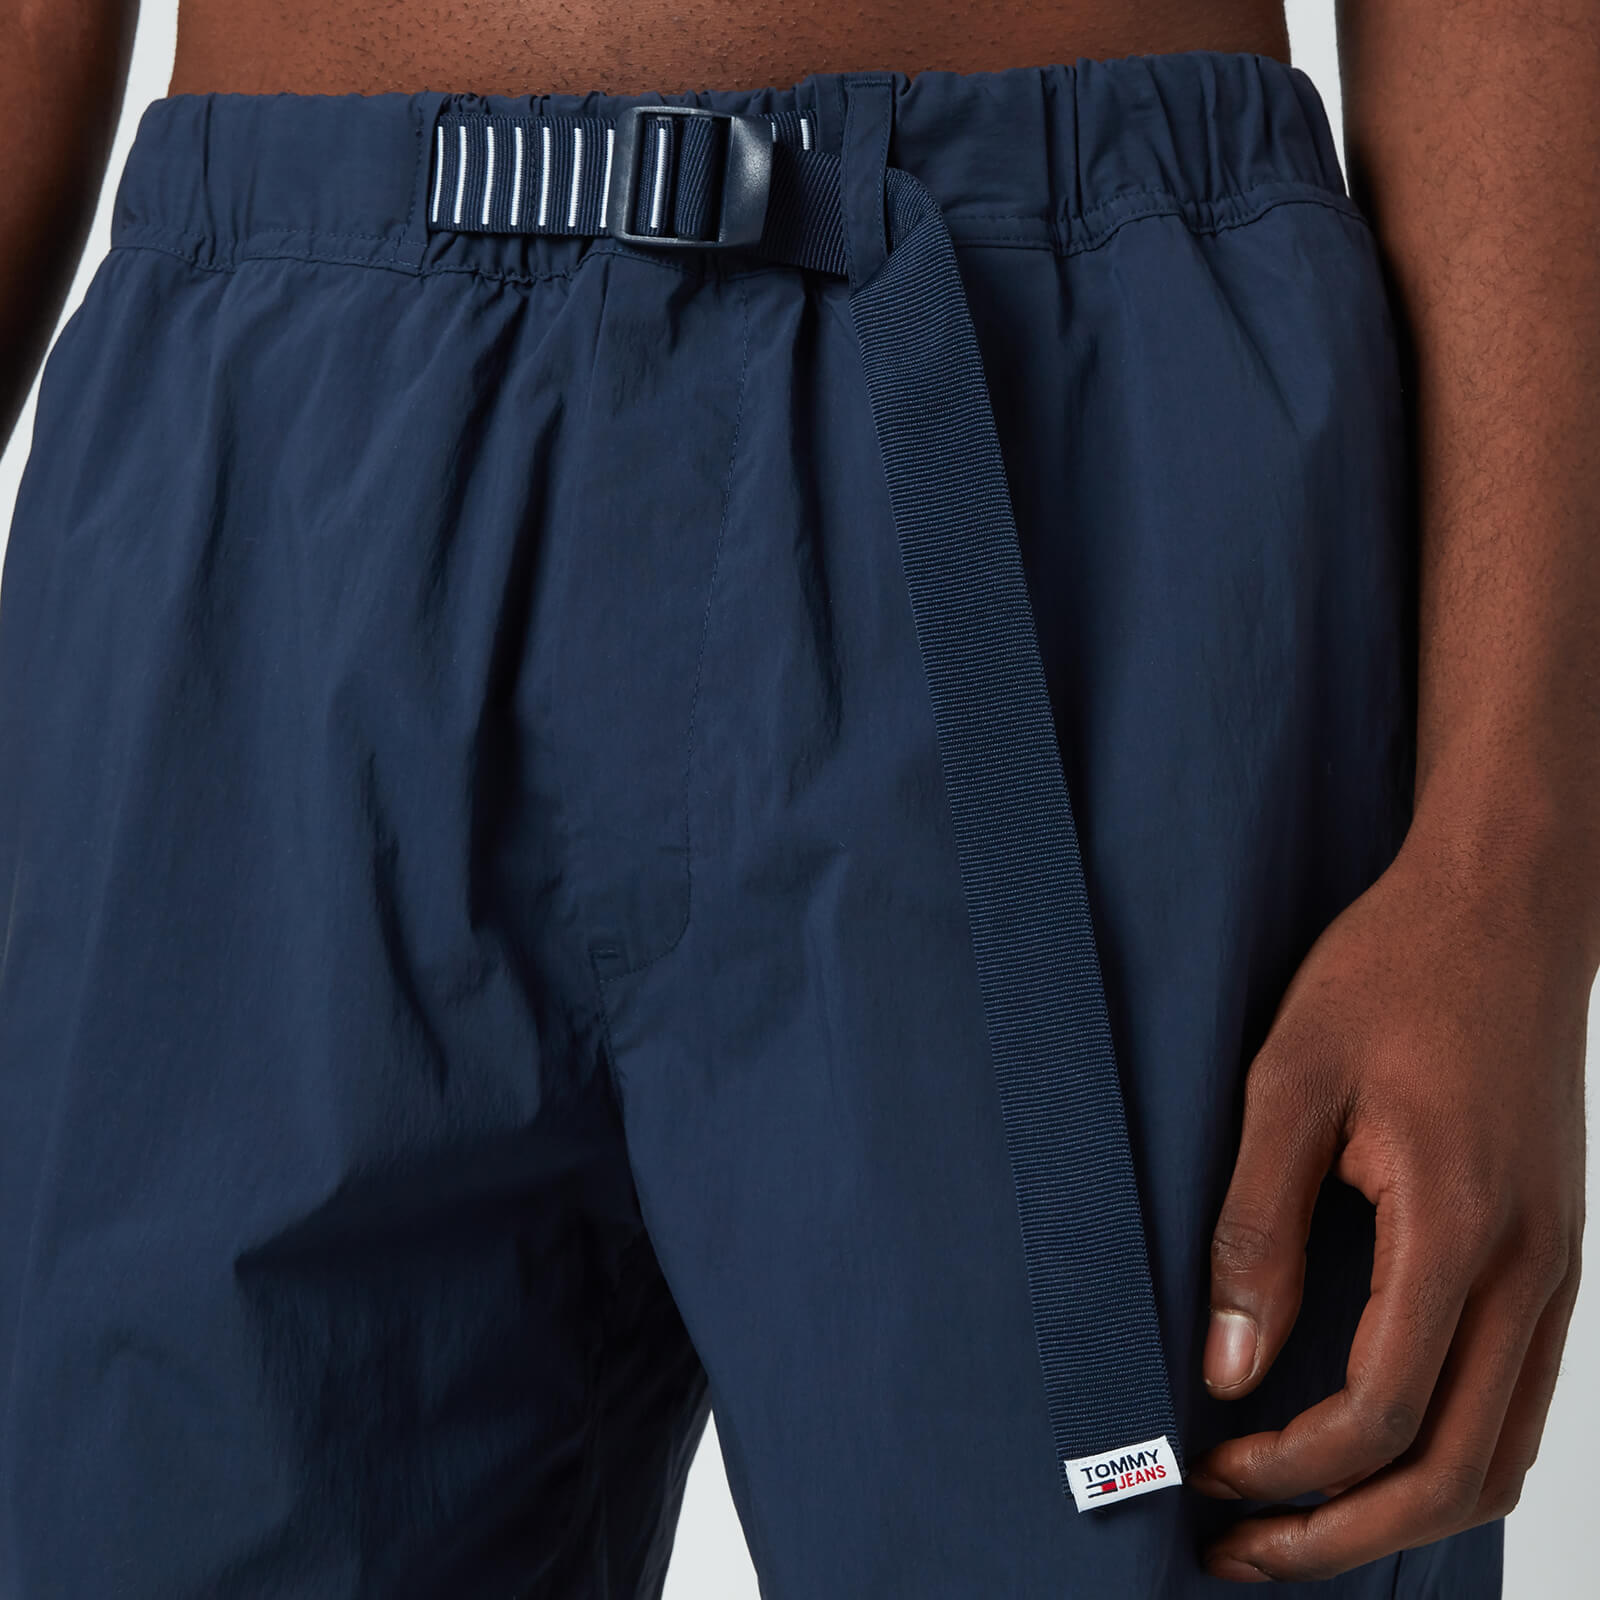 Tommy Jeans Men's Belted Beach Shorts - Twilight Navy - 30